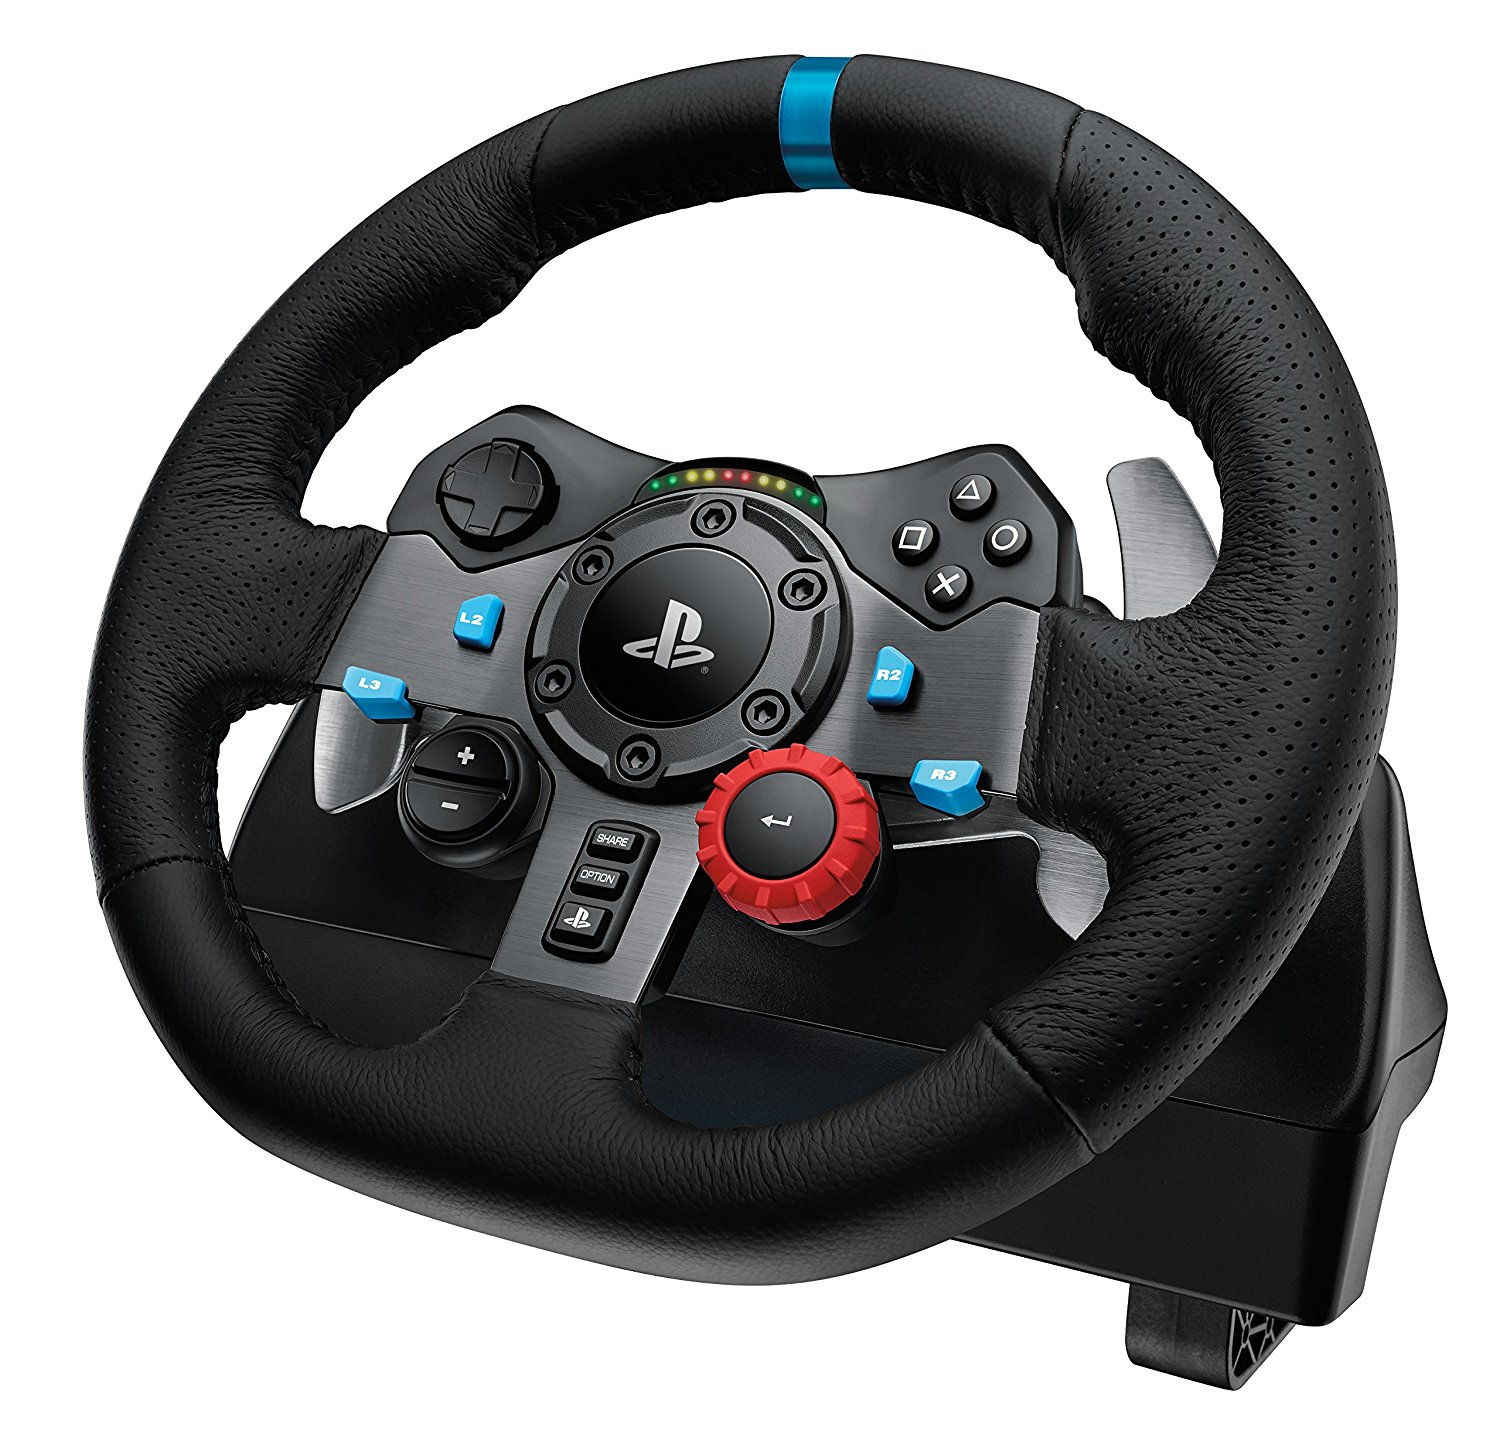 Logitech G29 Driving Force Racing Wheel (PS4, PS3, PC) product image